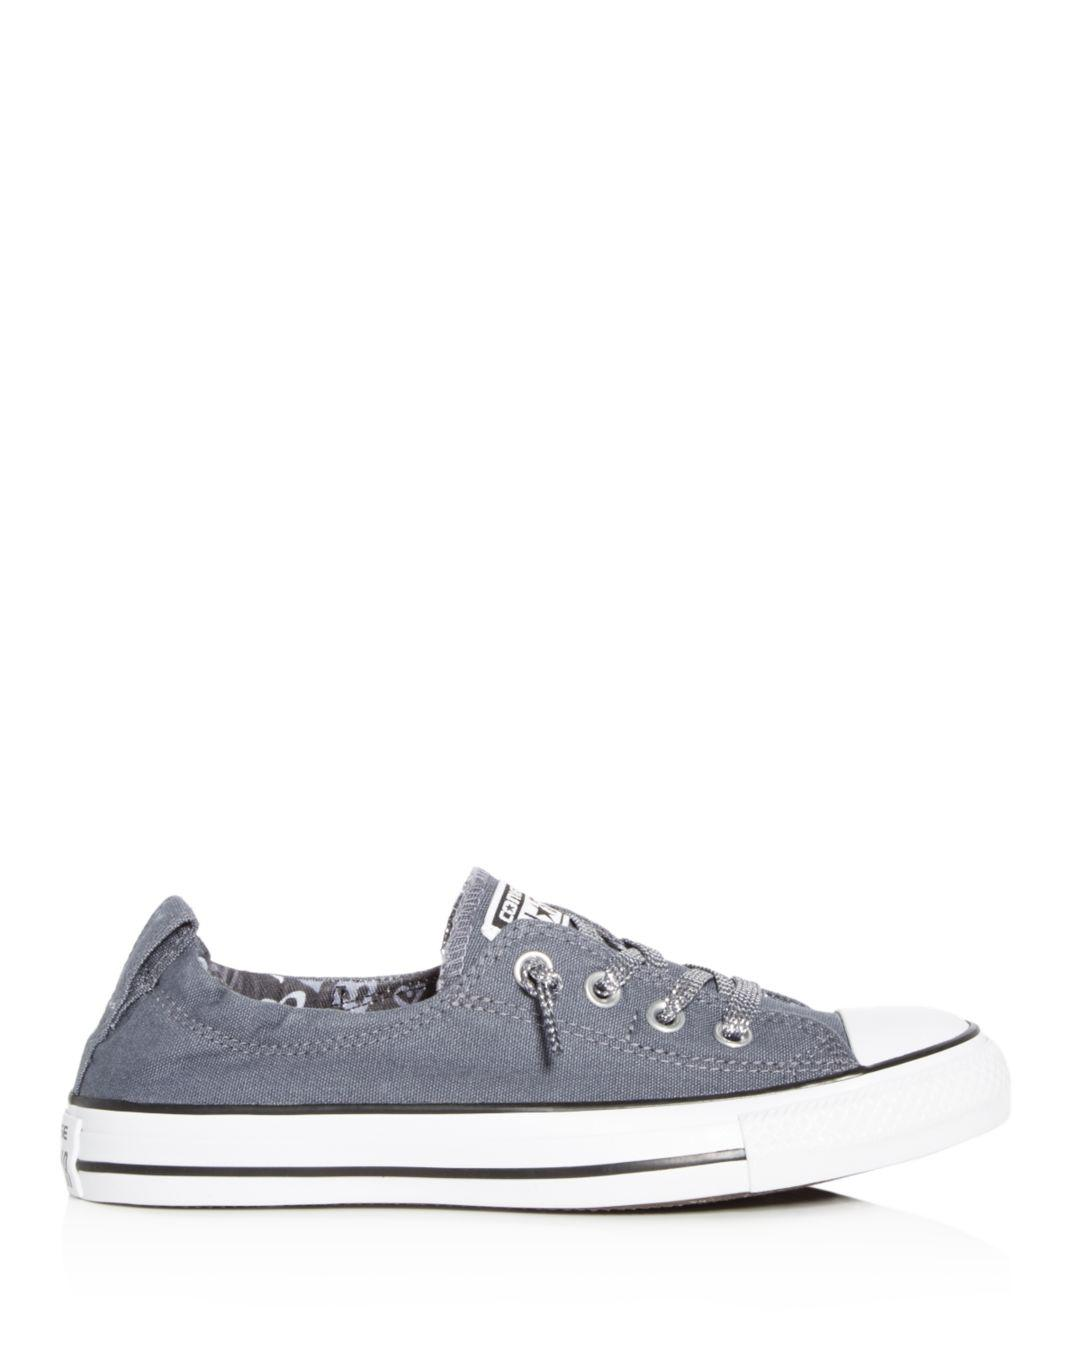 638991d8e53b81 Gallery. Previously sold at  Bloomingdale s · Women s Converse Chuck Taylor  ...